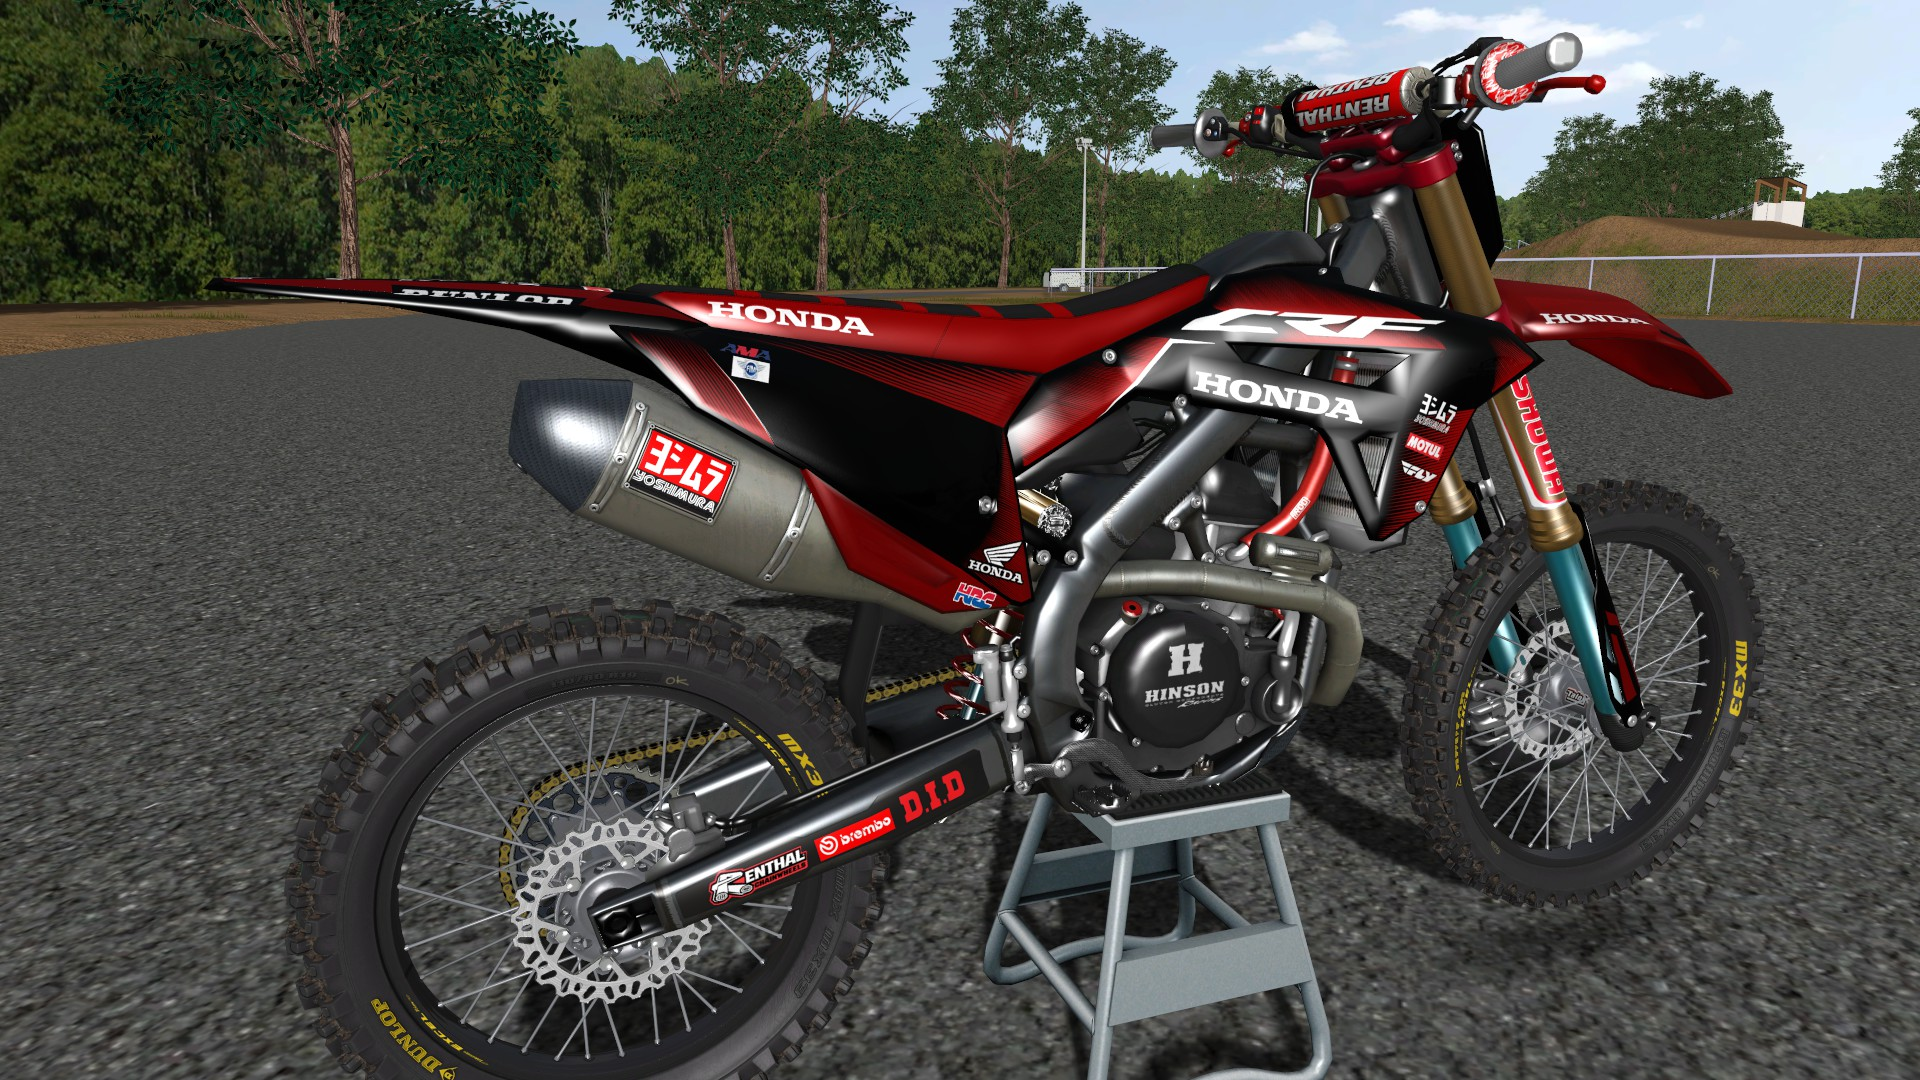 *UPDATED* By Andersson 2021 CRF450 v2 (MUCH BETTER QUALITY)